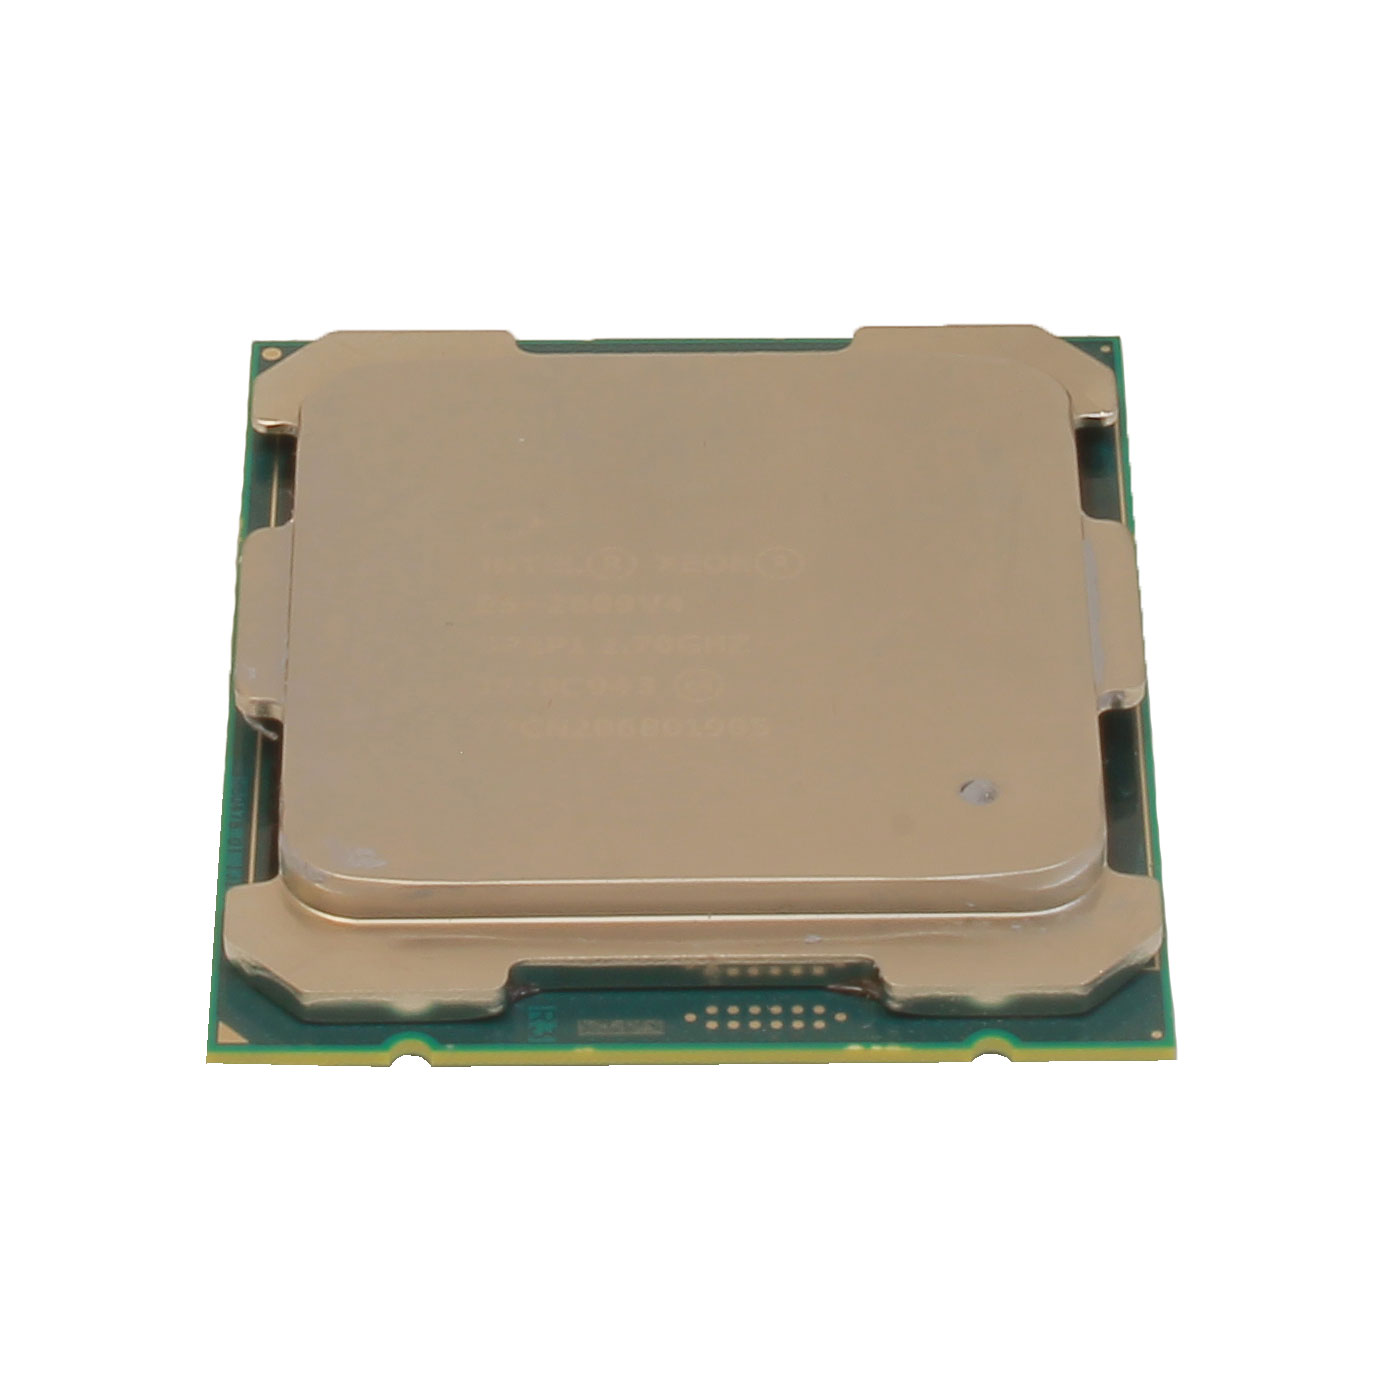 Intel Xeon 819837-B21 E5-2609V4 1.7 GHz 20 MB LGA2011-v3 Kit